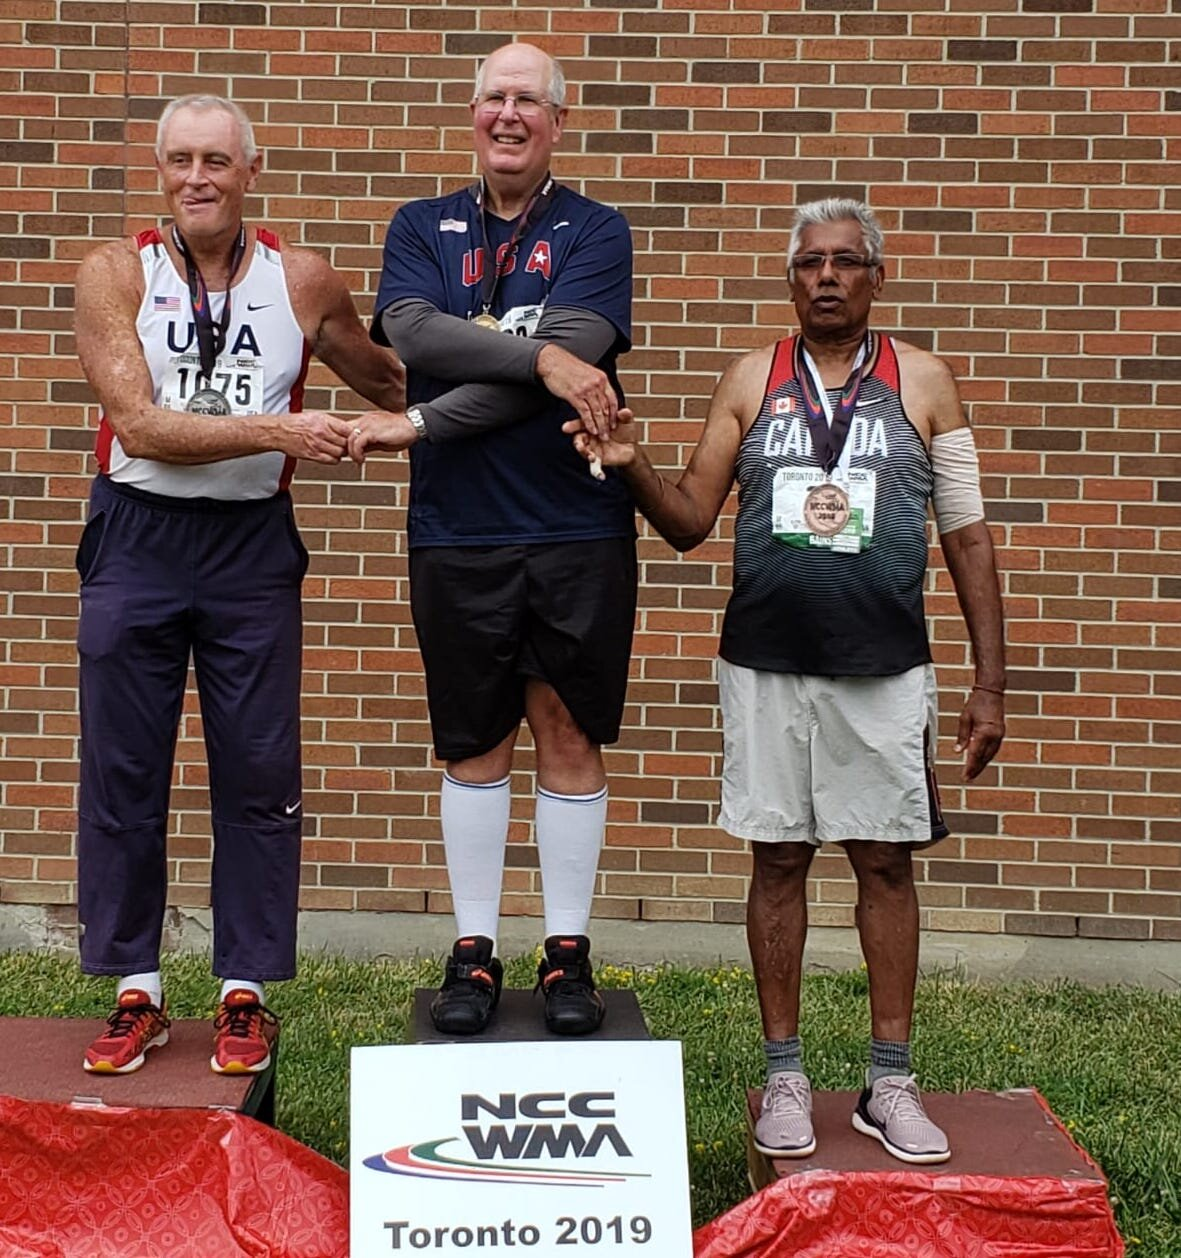 Ultra Throw's Mohan Bains seen far left in Toronto with  proud winners of 65-69 age group in the Hammer Throw